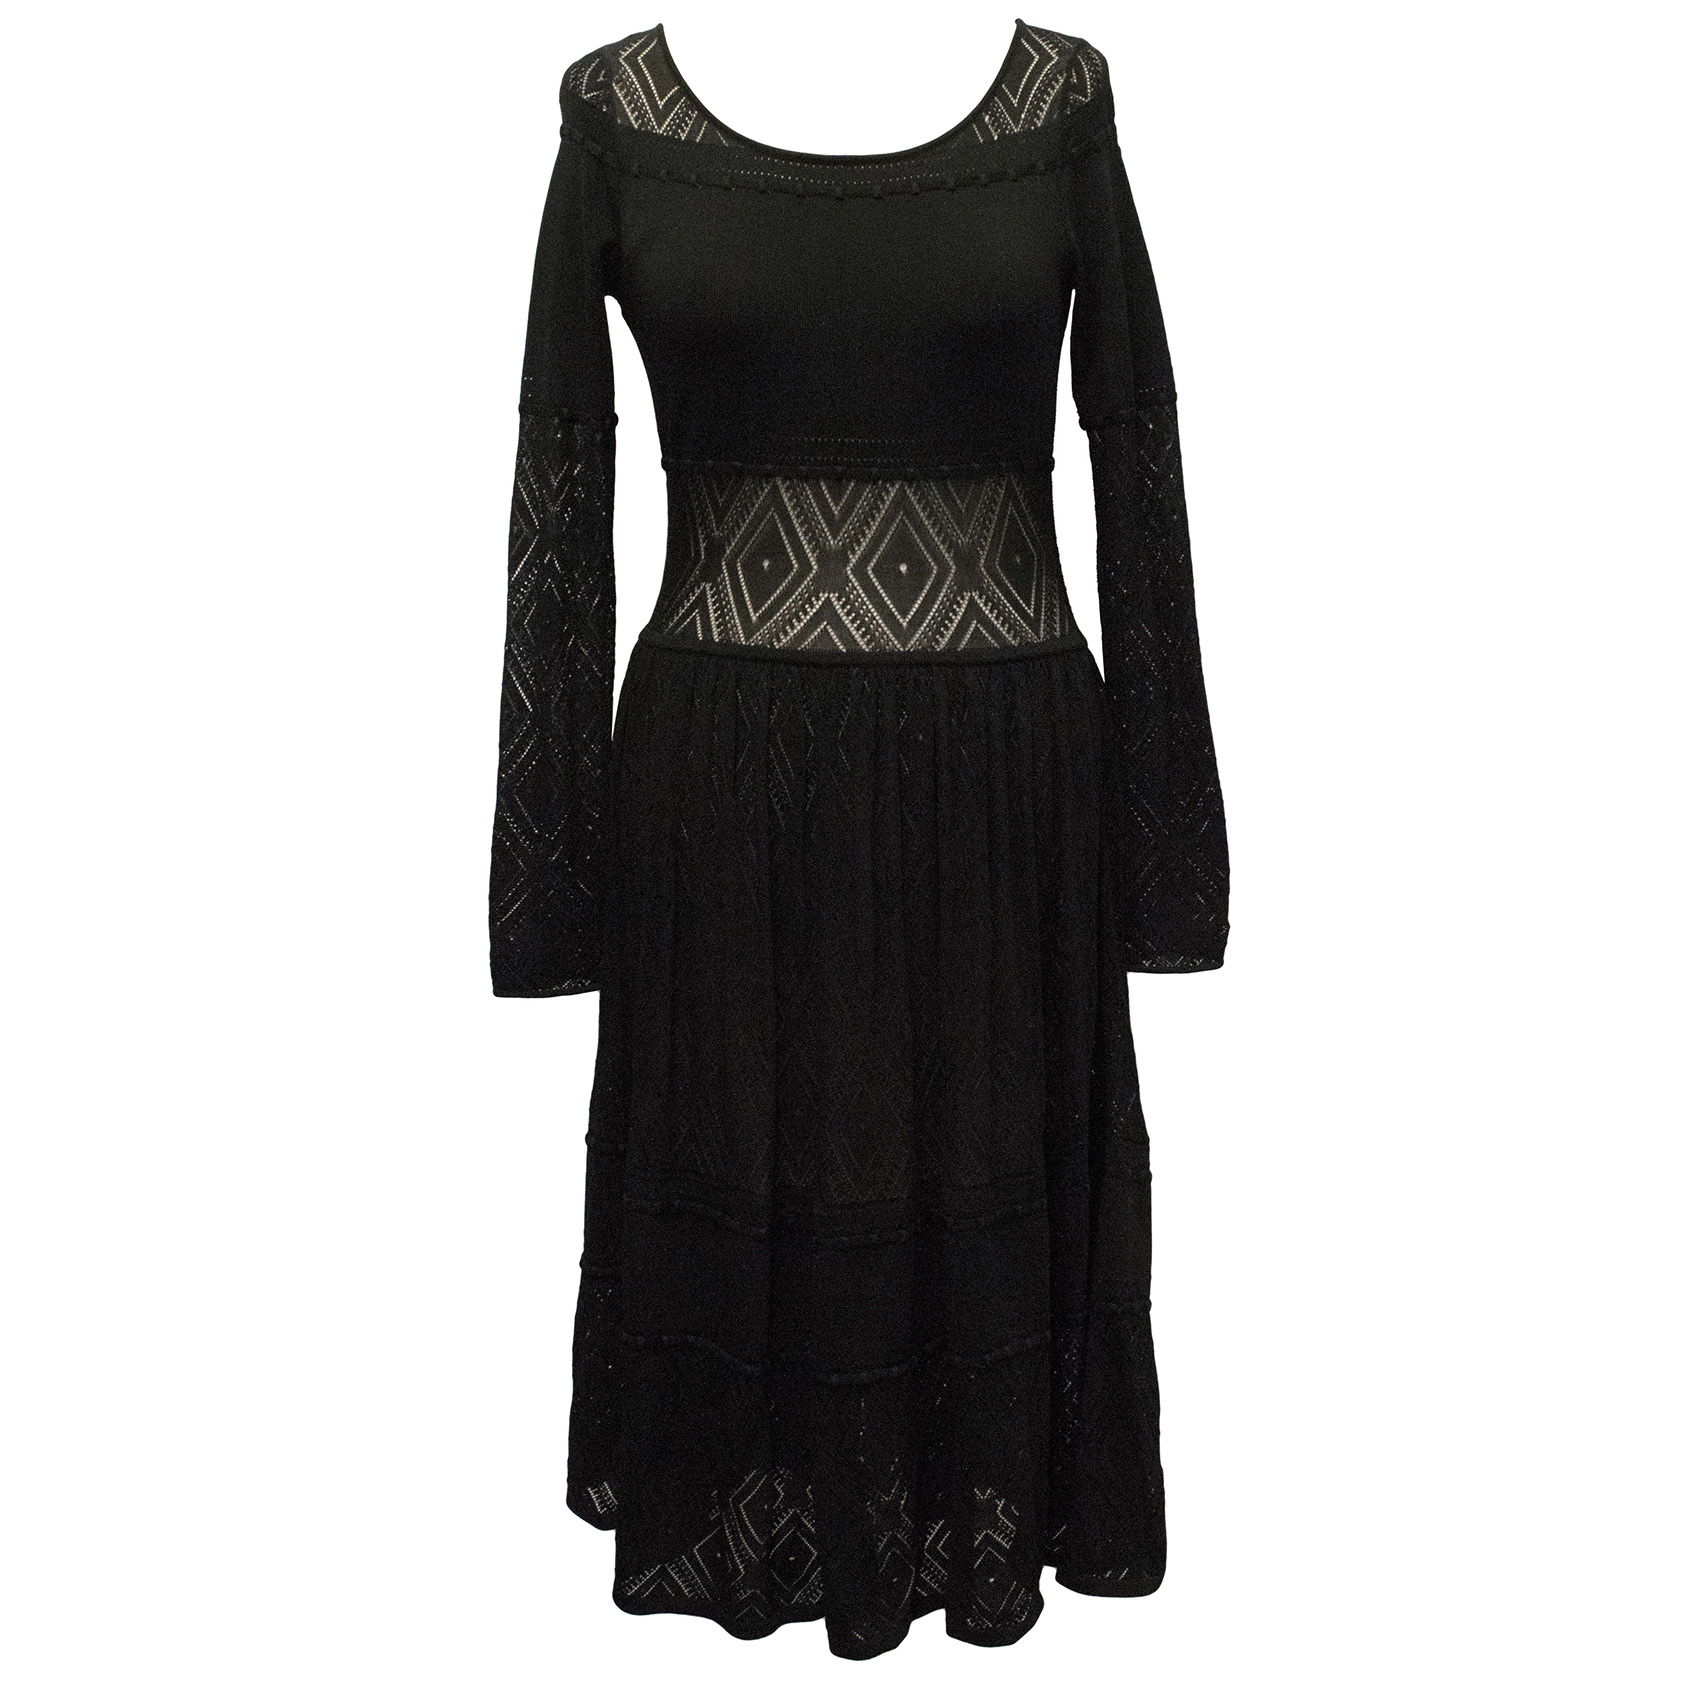 Temperley Black Knit Dress